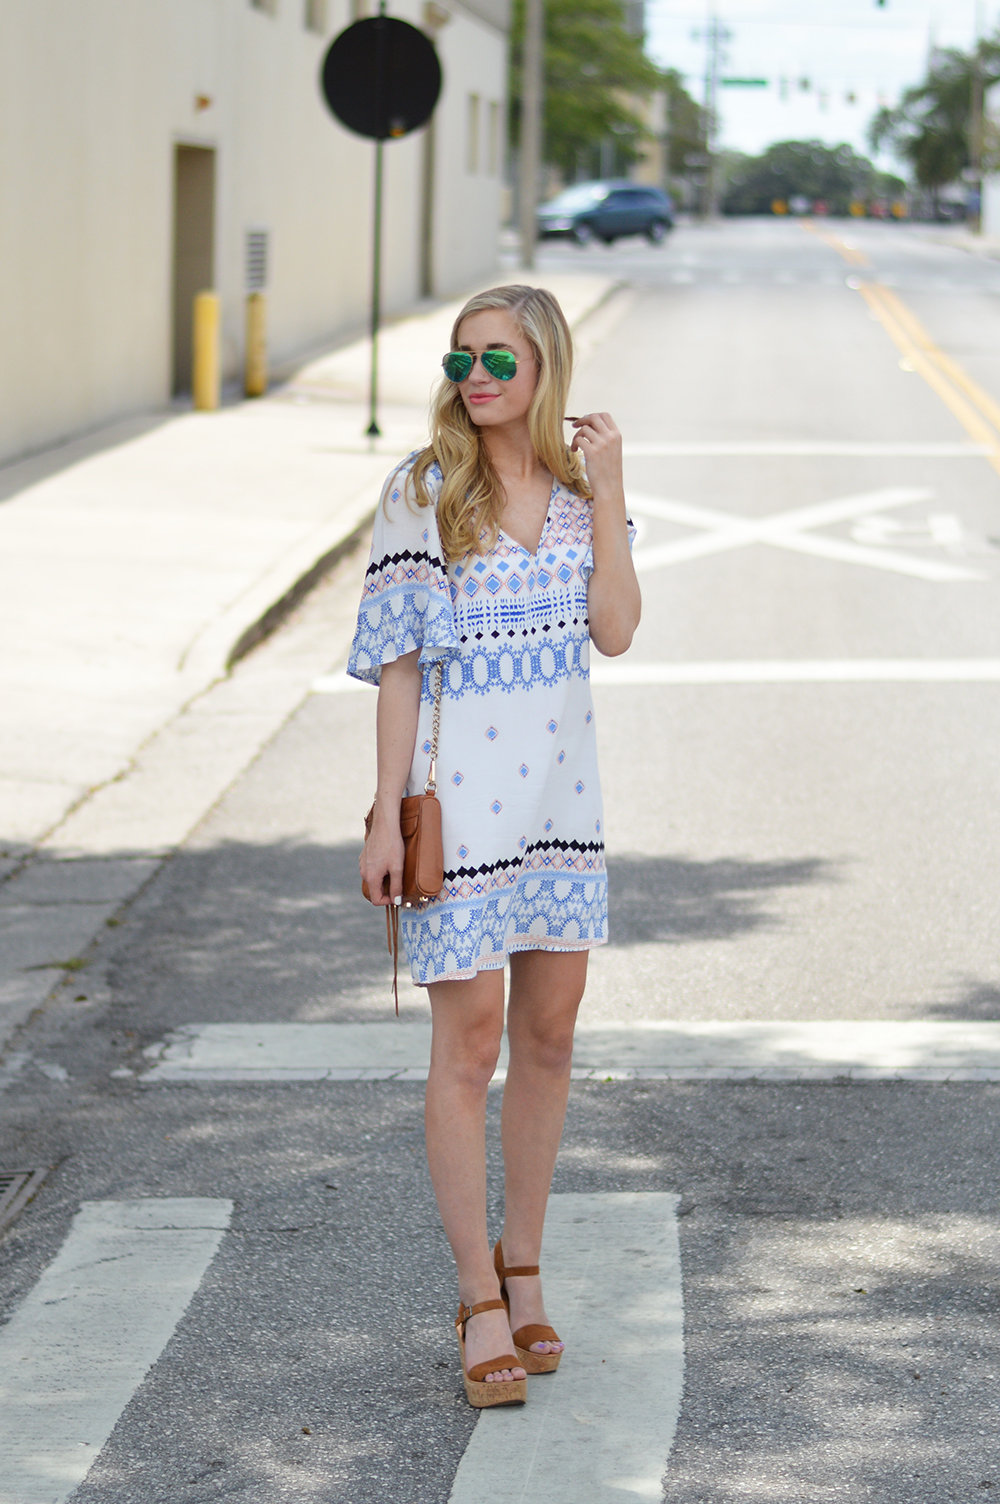 styelled-blog-glam-glam-clothing-summer-style-summer-wear-sundress-sun-dress-white-dress-summer-print-rebecca-minkoff-dolce-vita-bell-sleeve-fashion-blogger-fblogger-style-blogger-04